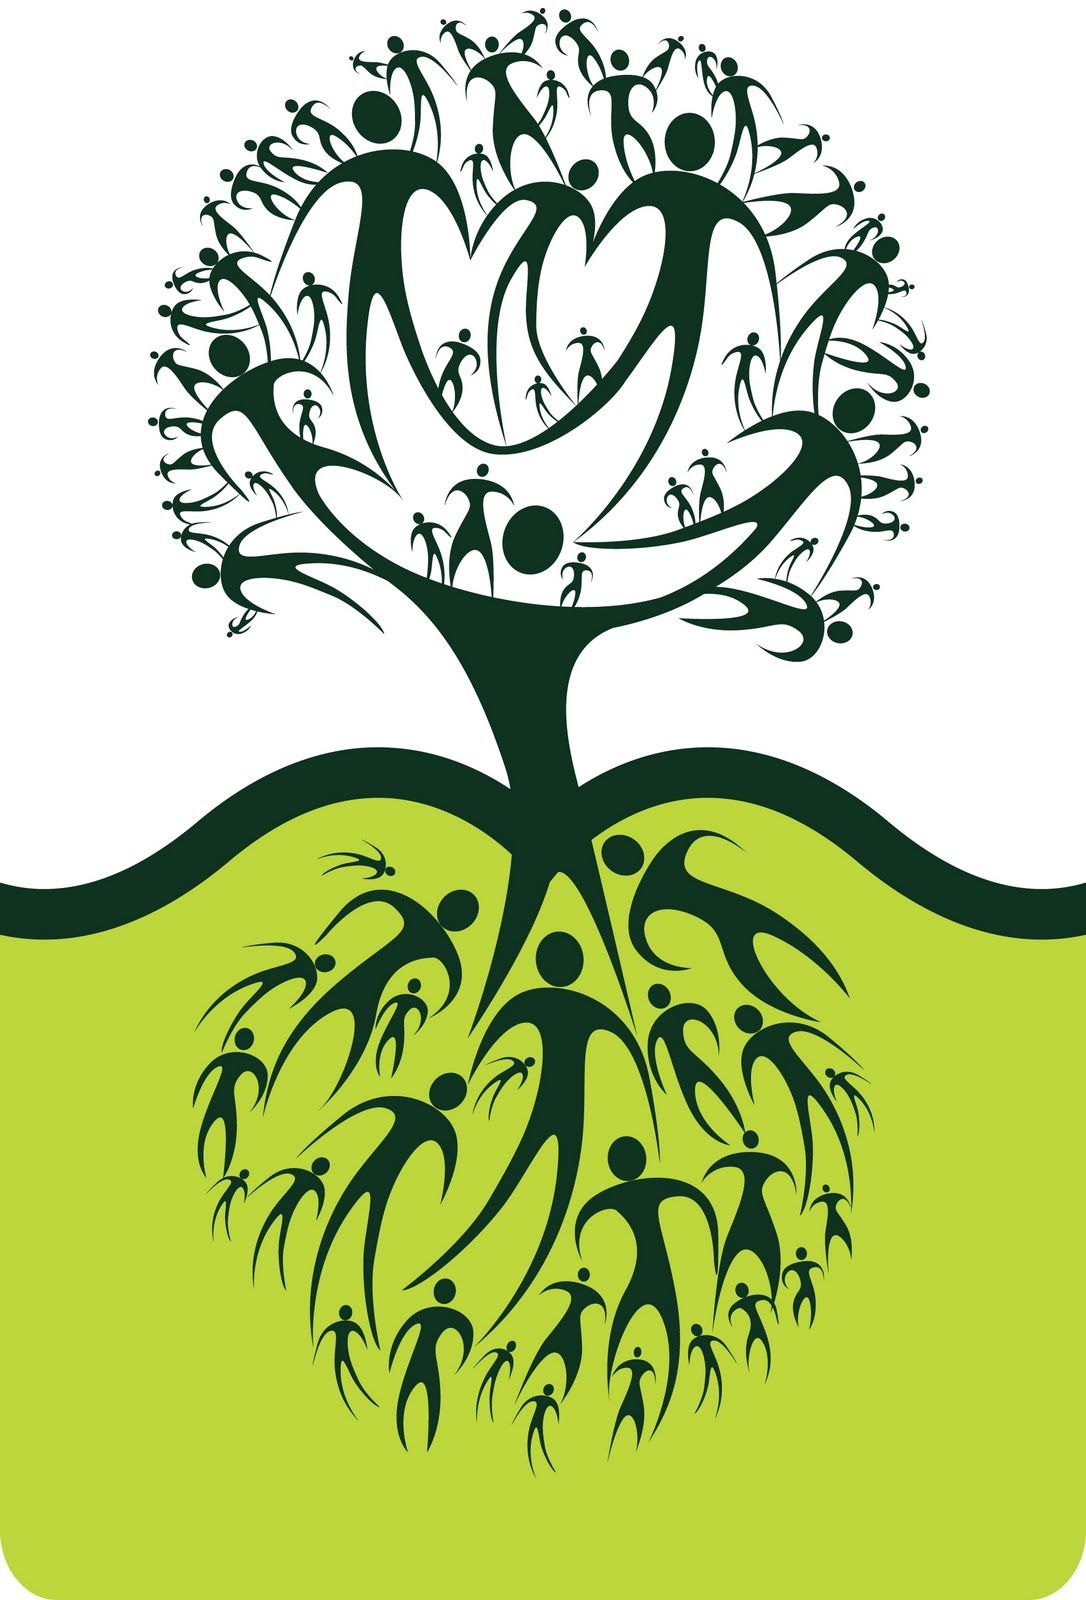 Tree Drawings With Roots | It won\'t be constant enlightenment. There ...